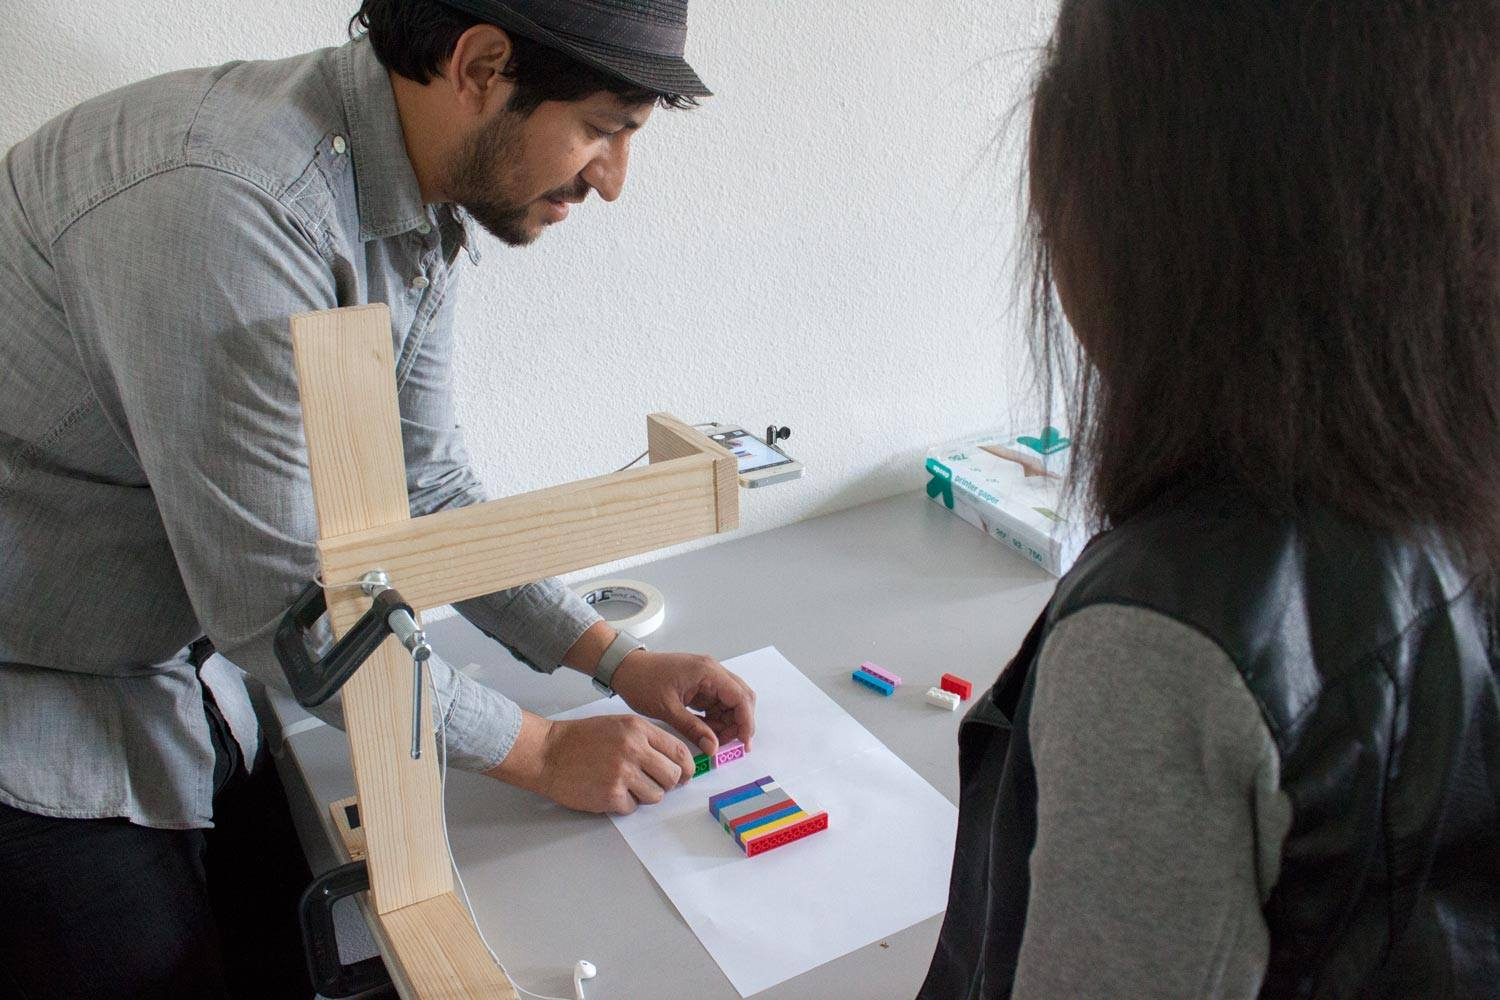 Facebook, Autodesk partner with a design organization geared toward underserved kids